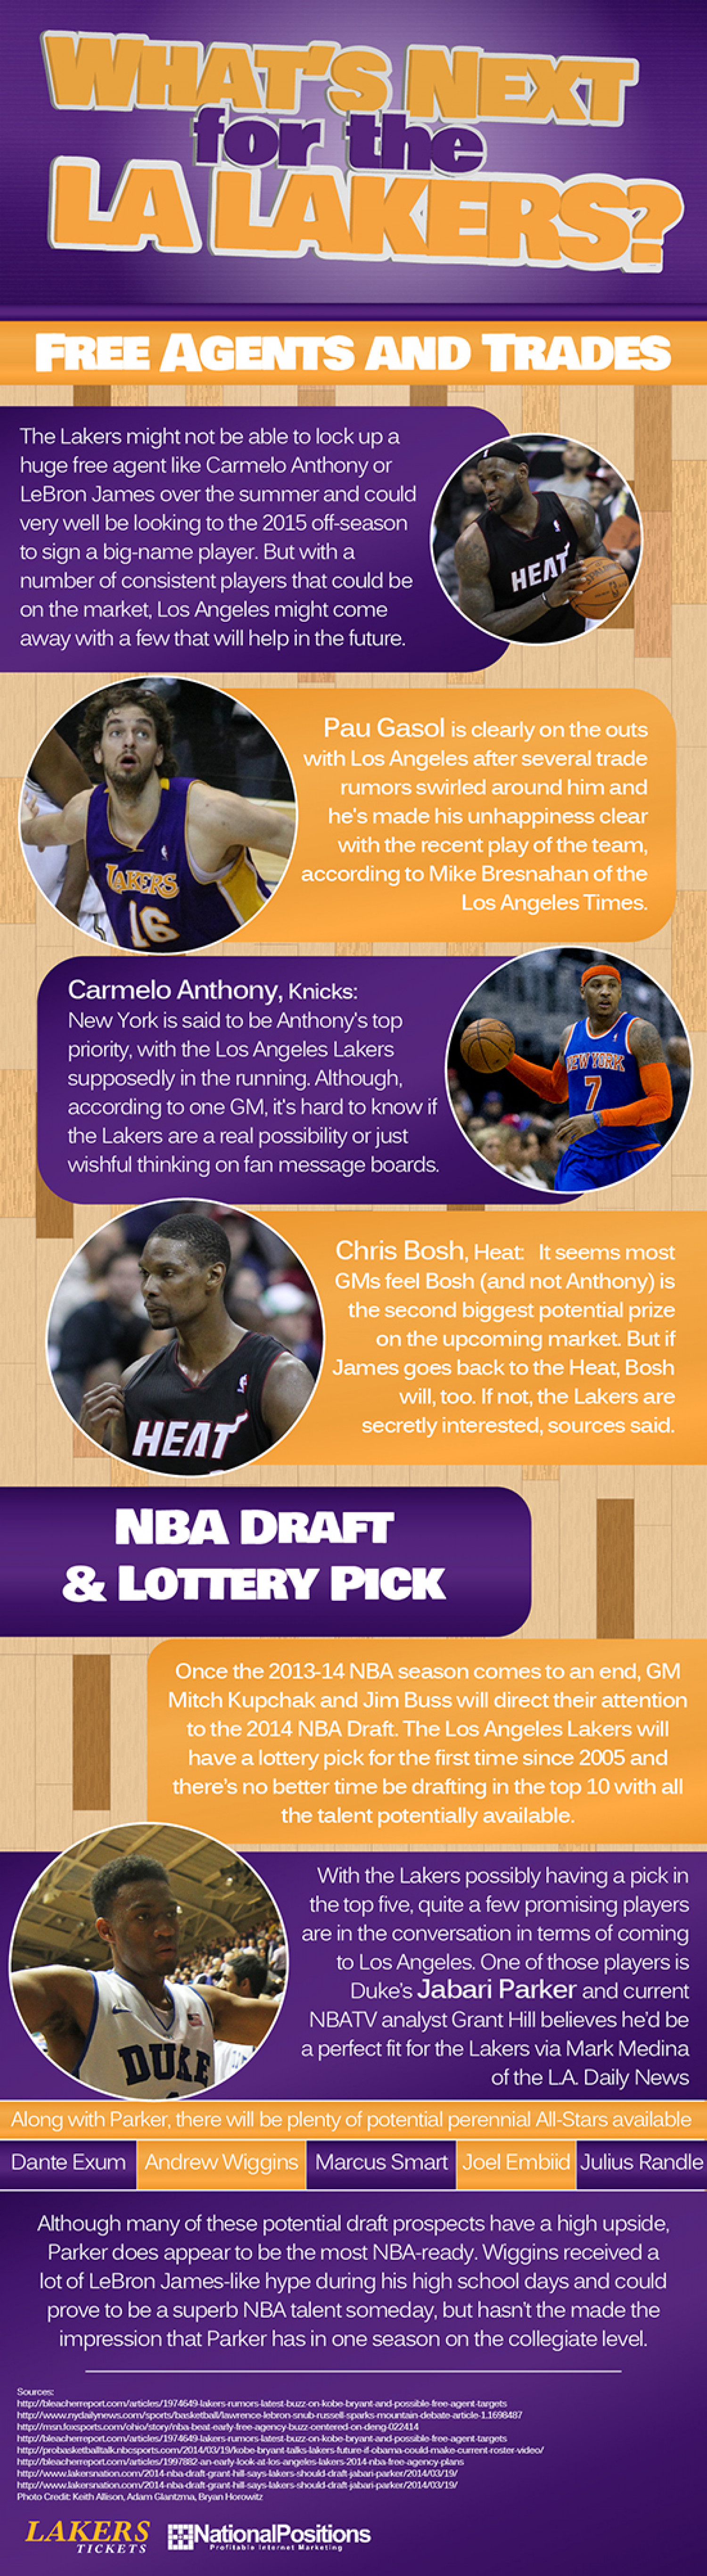 Whats Next For The LA Lakers? Infographic